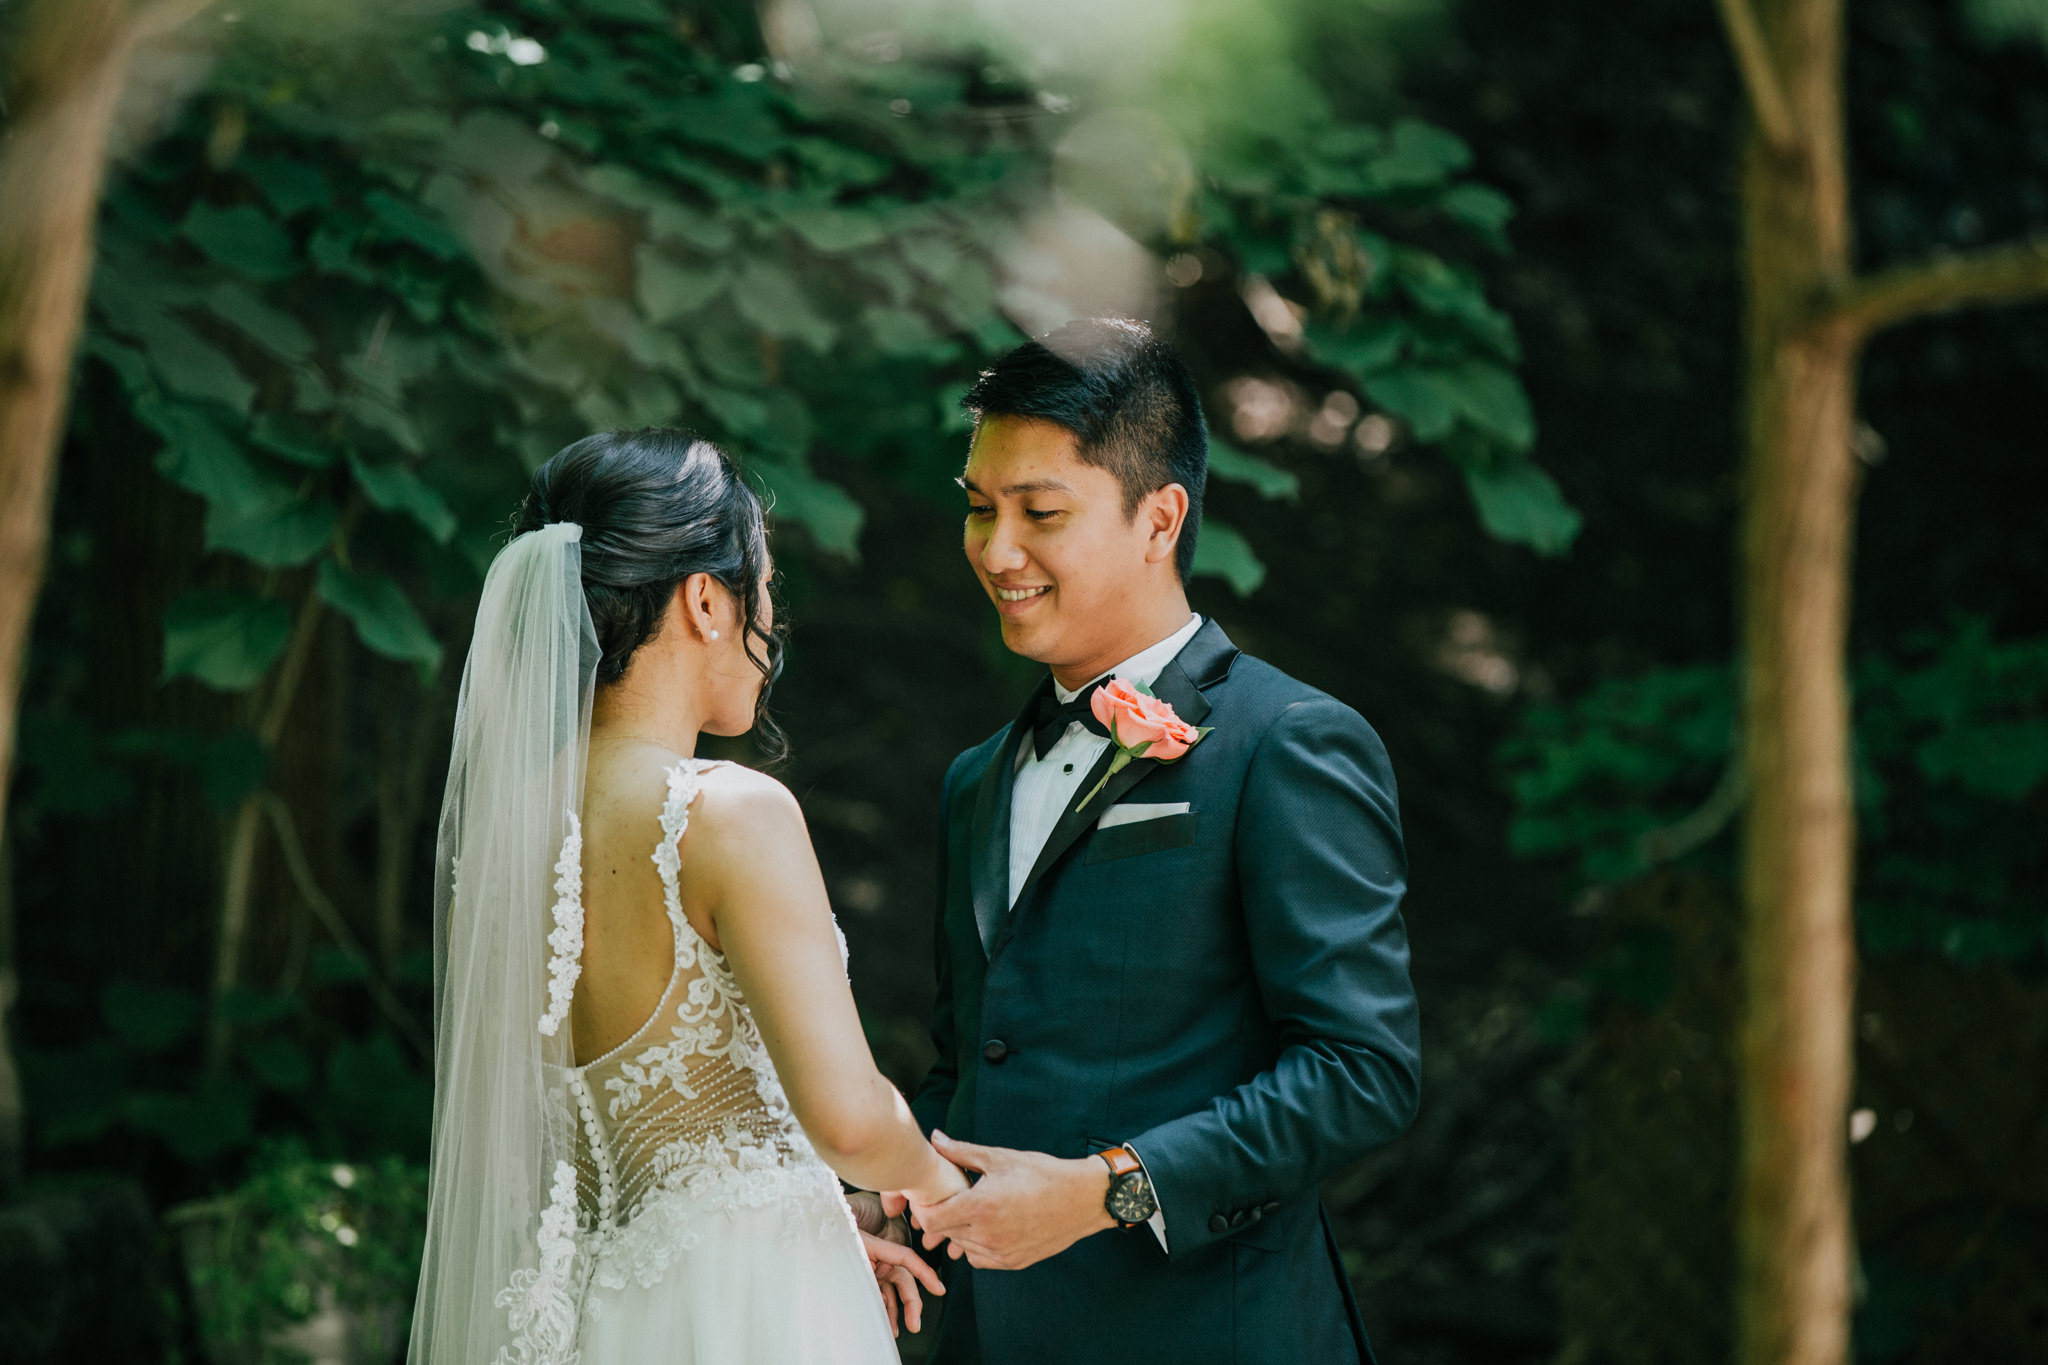 groom smiling at bride in a garden